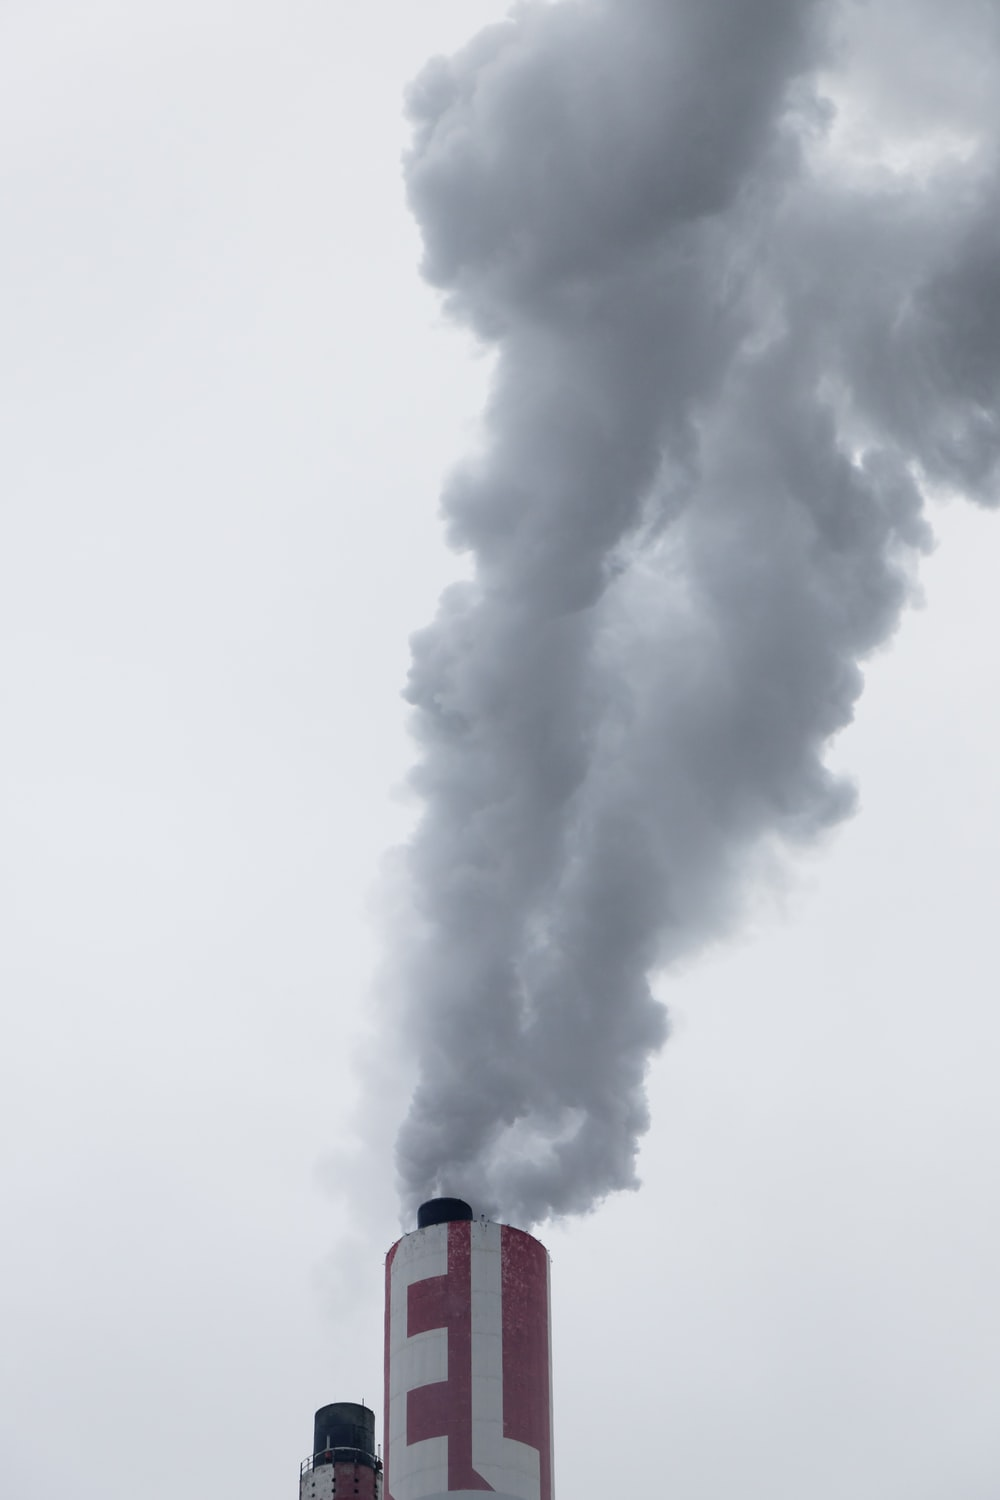 red factory chimney with smoke